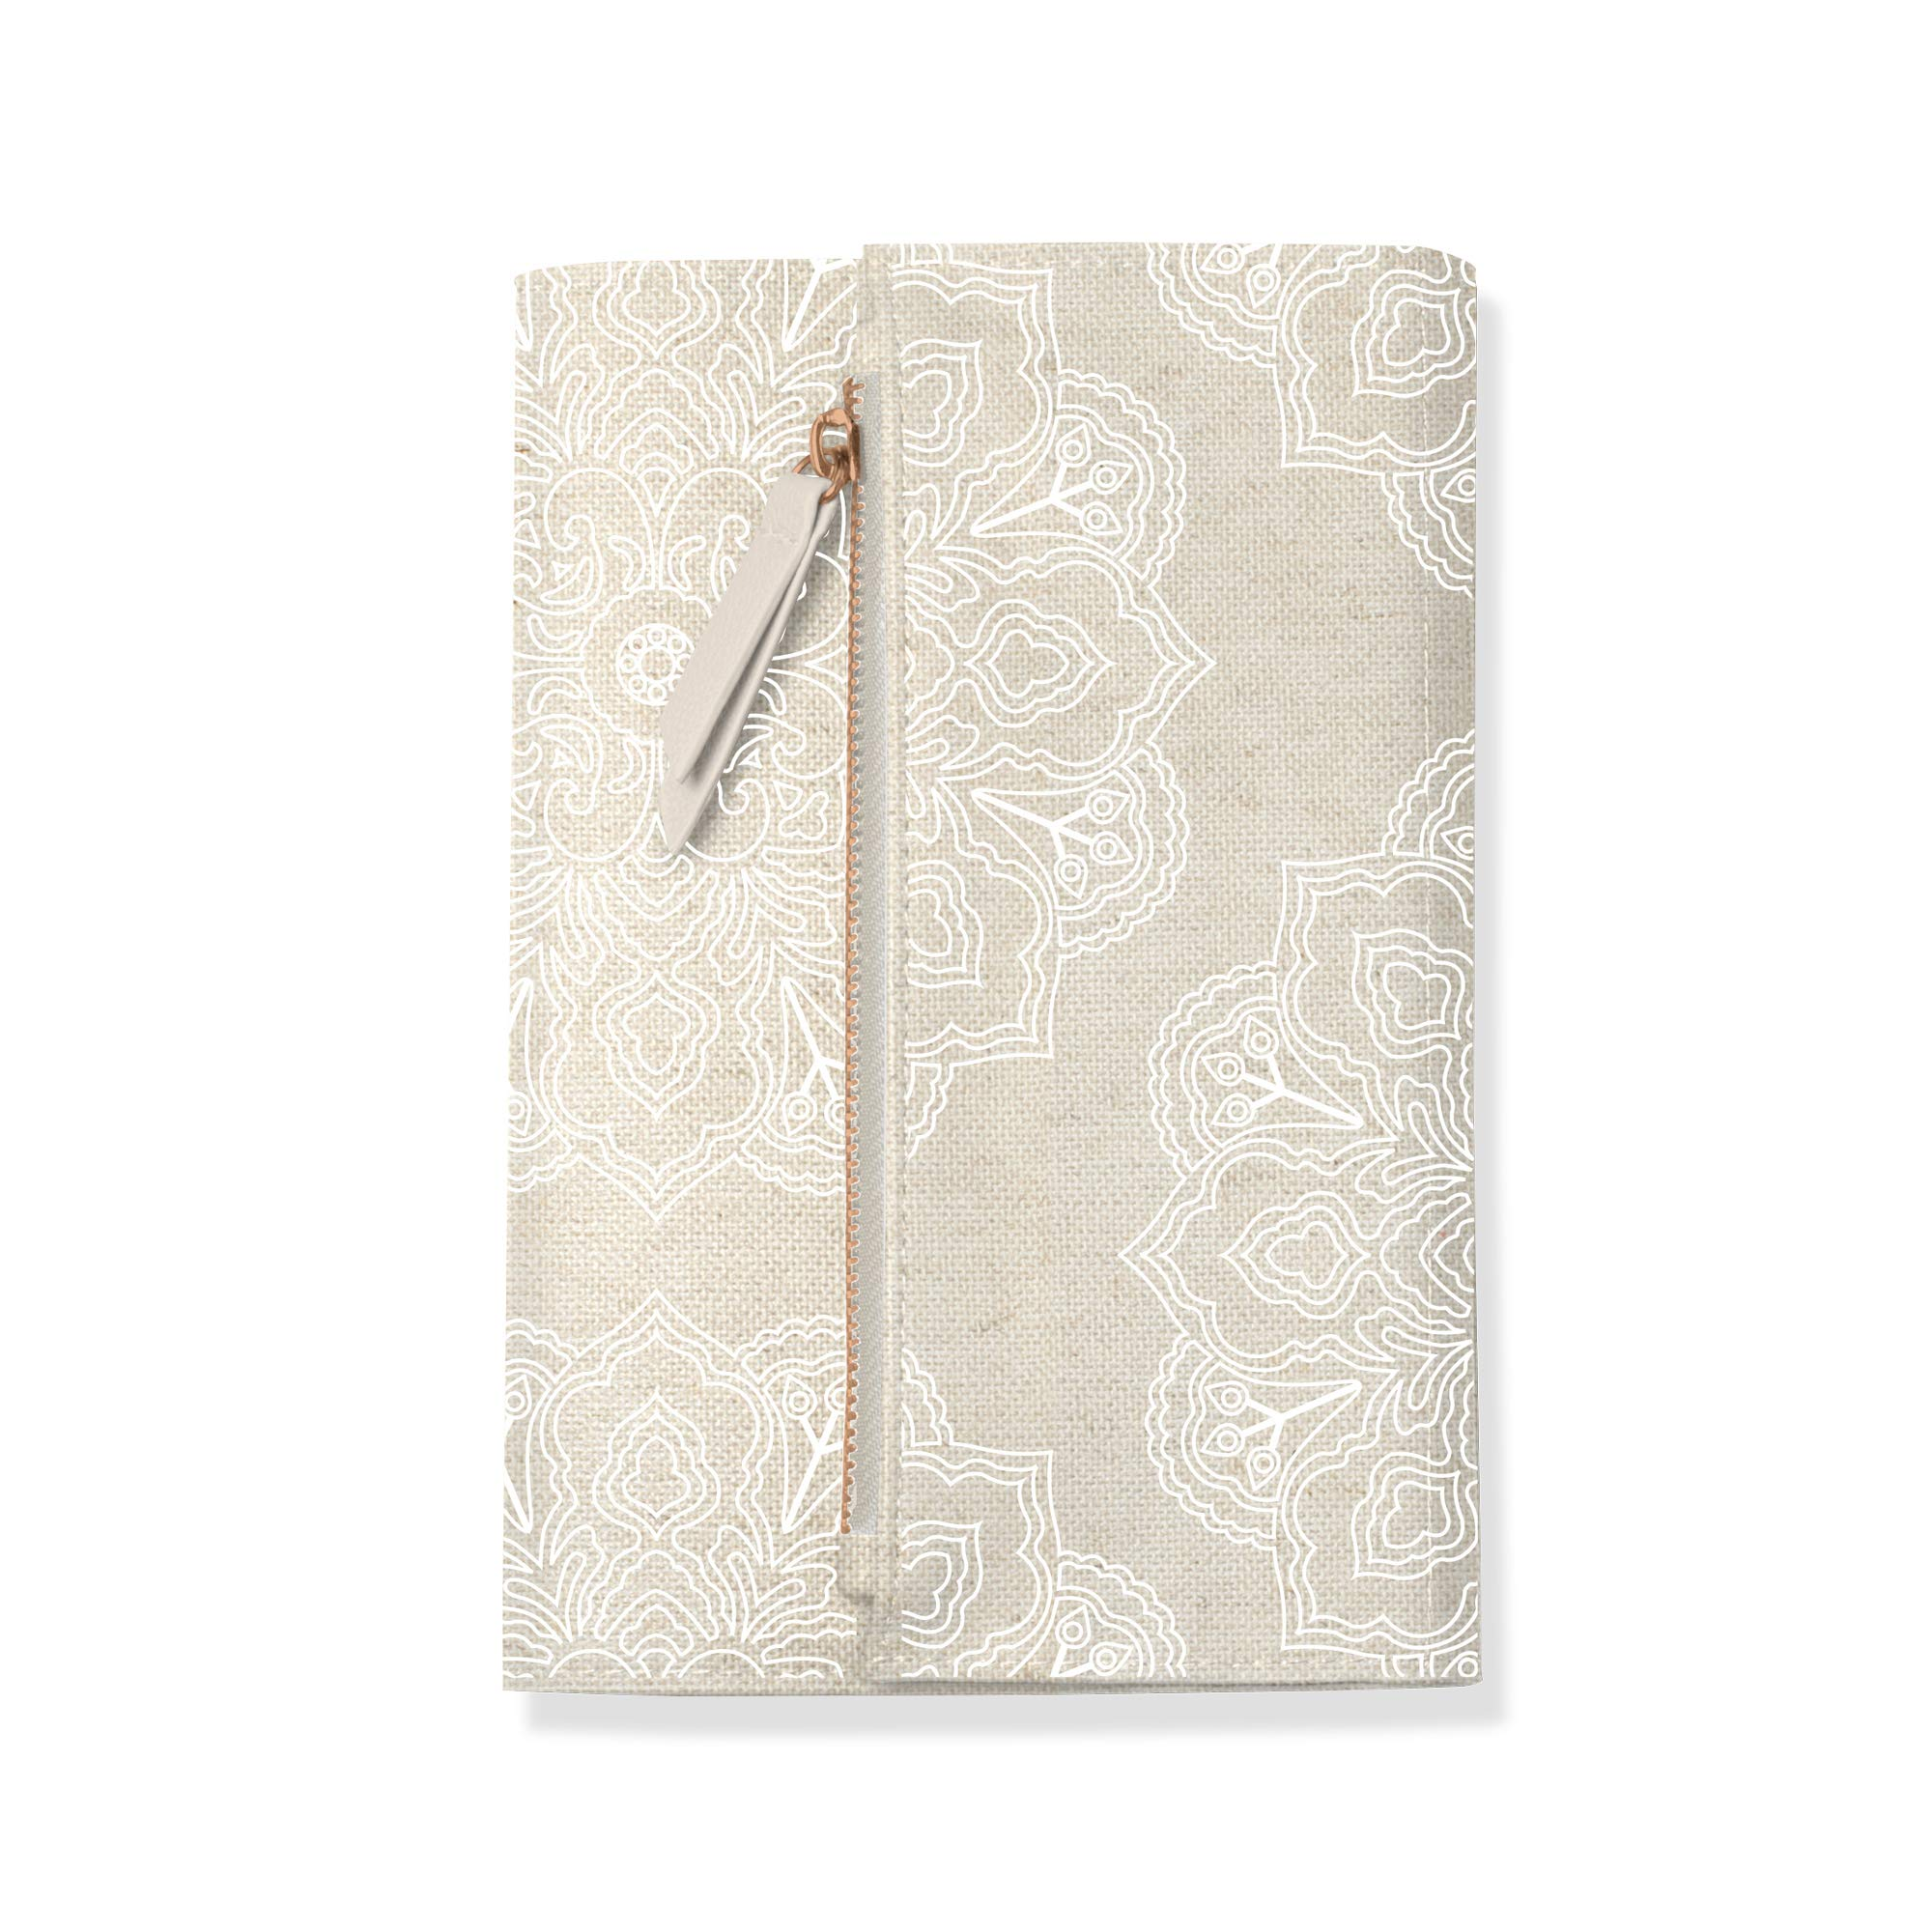 Fringe Canvas Clutch Paperback Journal Encased in Soft Cover with Zippered Pouch Flap Closure, 240 Lined Sheets, 6 x 8.5 Inches, Mandala (135201)